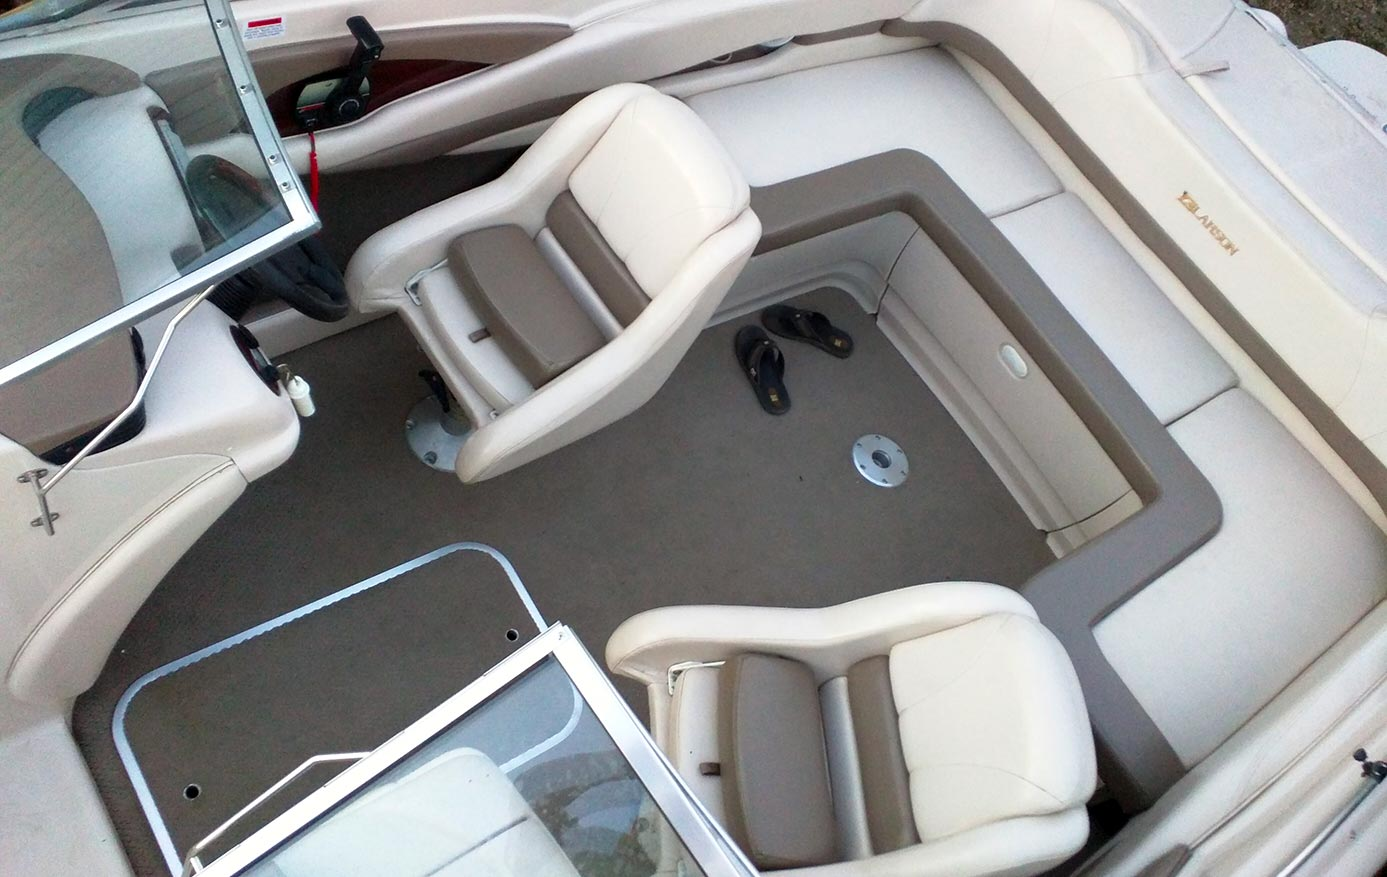 Mach Boats Upholstery, Bimini Tops, & Wakeboard Towers